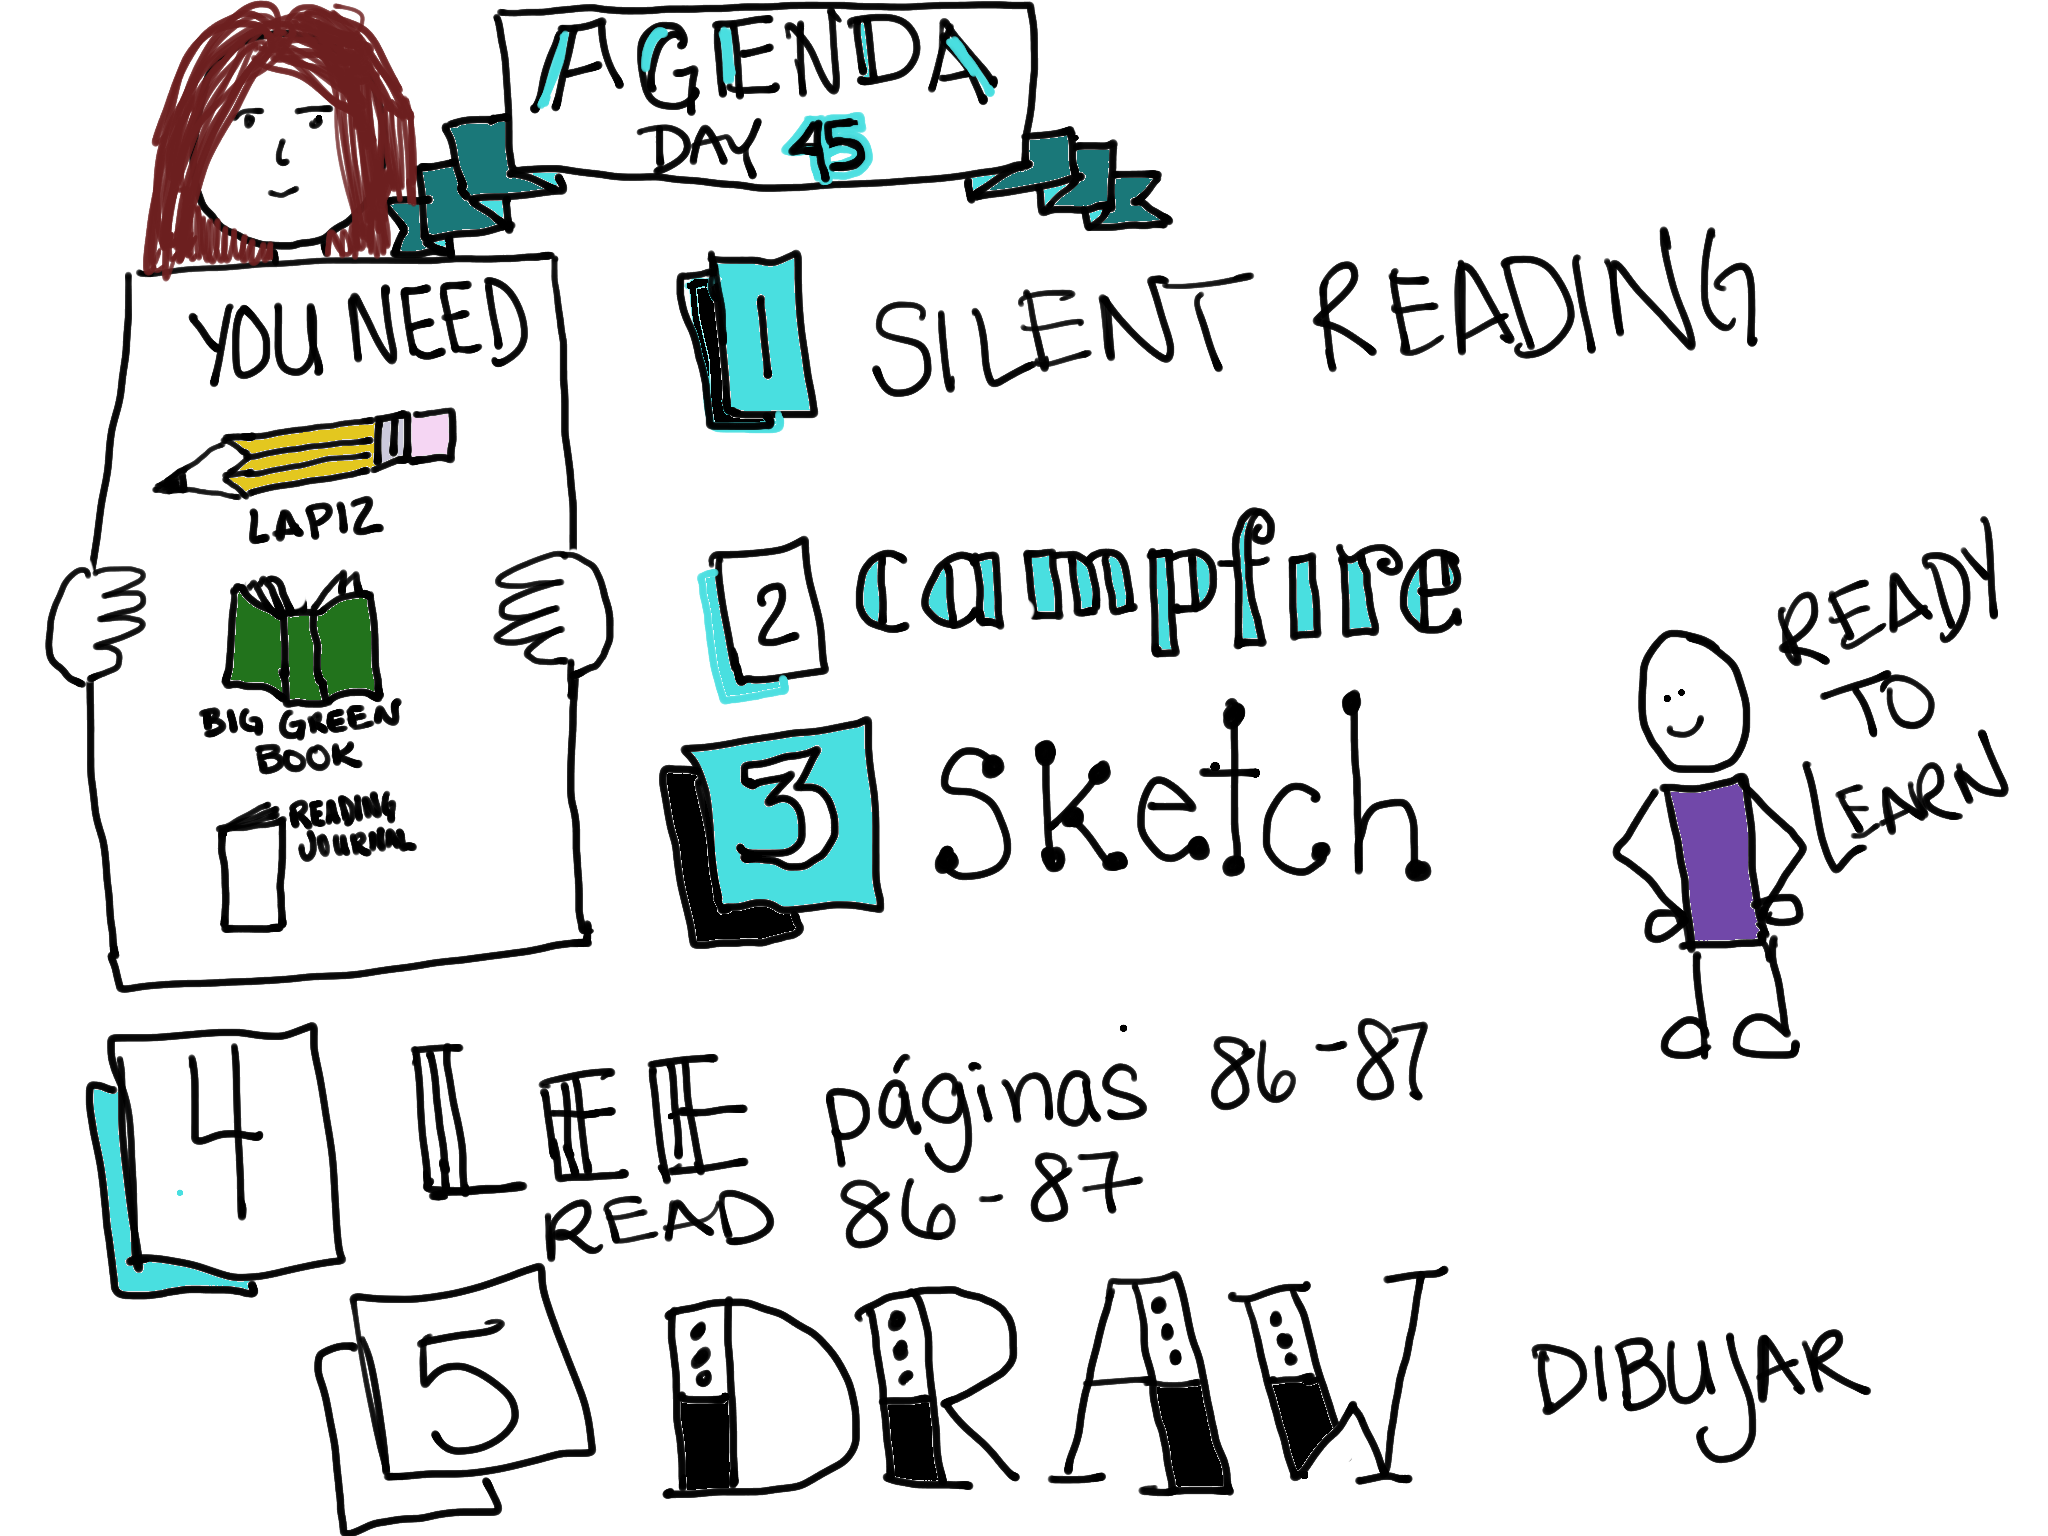 A Daily Agenda for EVERYONE with a little bit of art, too.